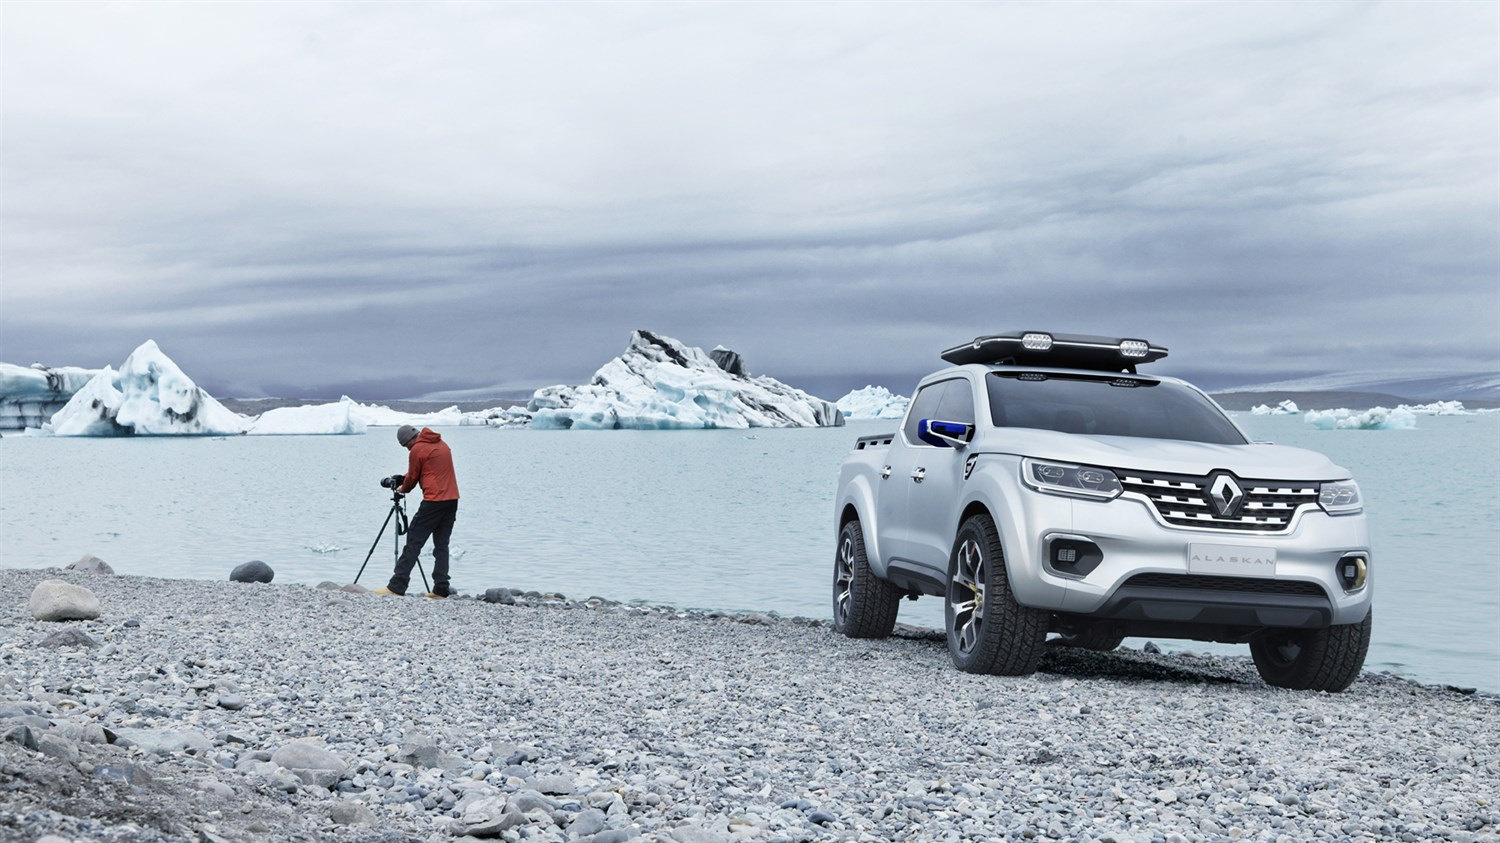 Renault ALASKAN Concept - 3/4 front view - The ideal partner for an exploratory photographer